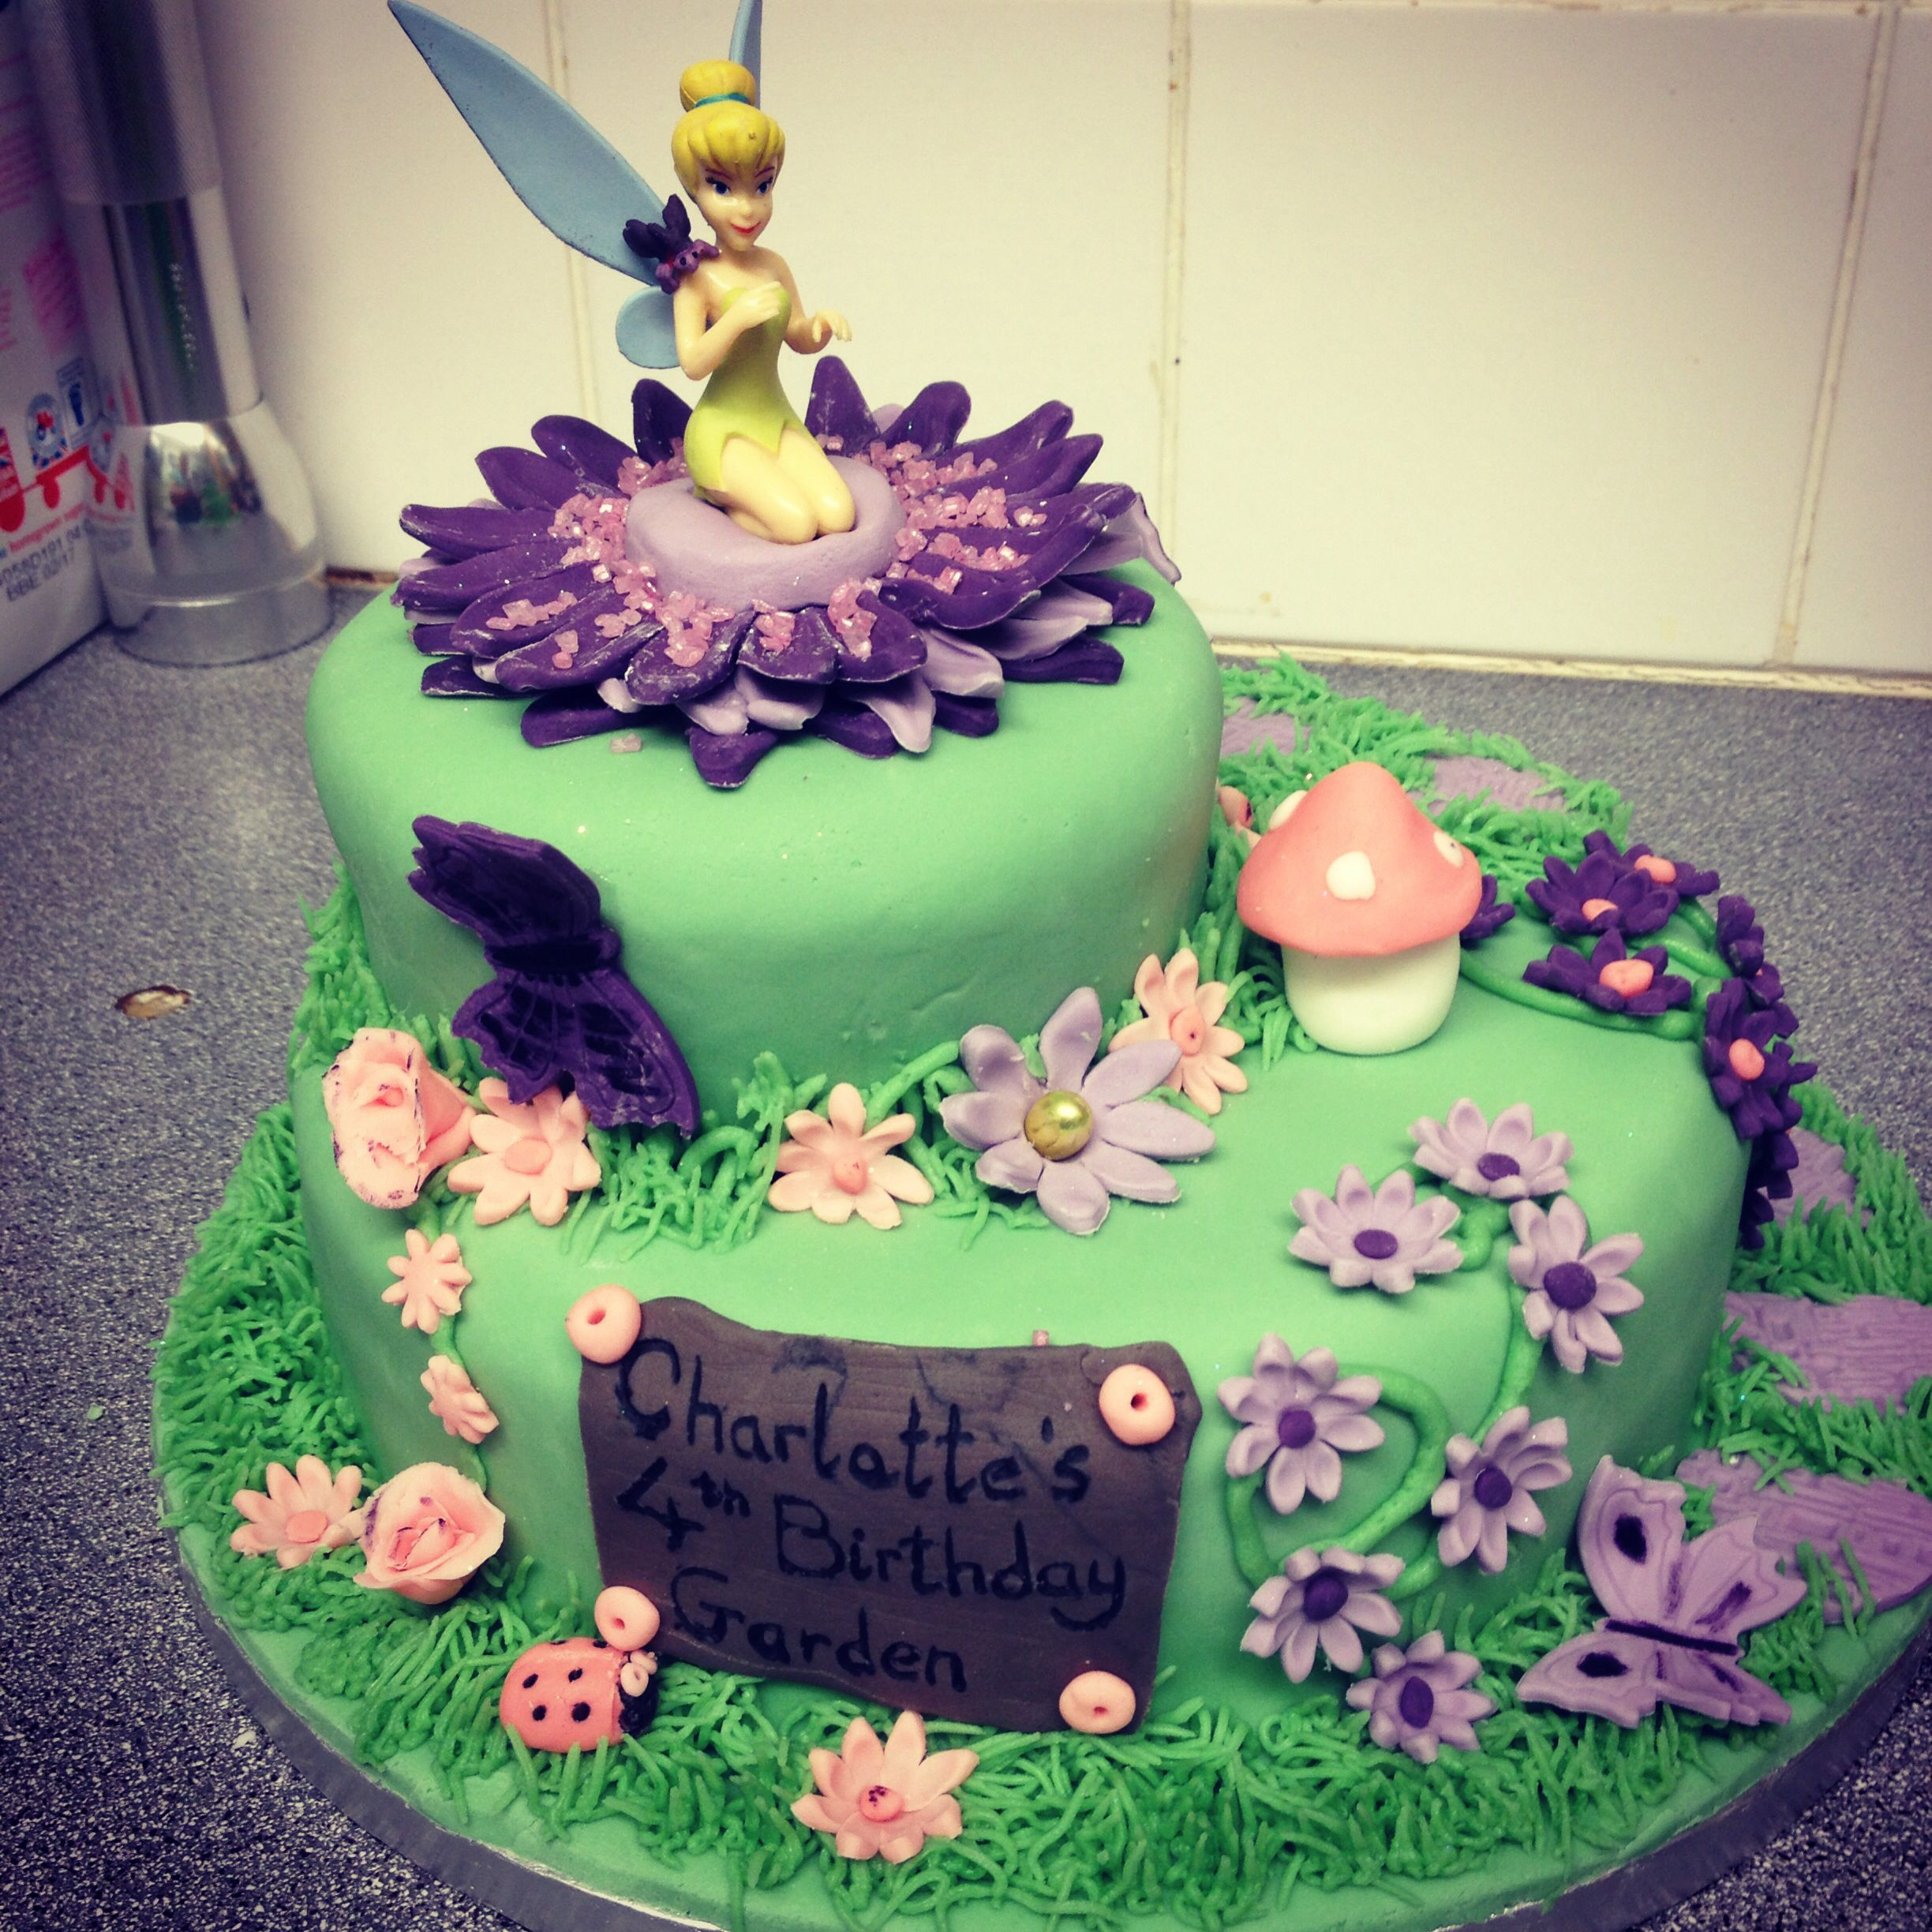 Tinkerbell Fairy Garden cake Birthday cake ideas Pinterest